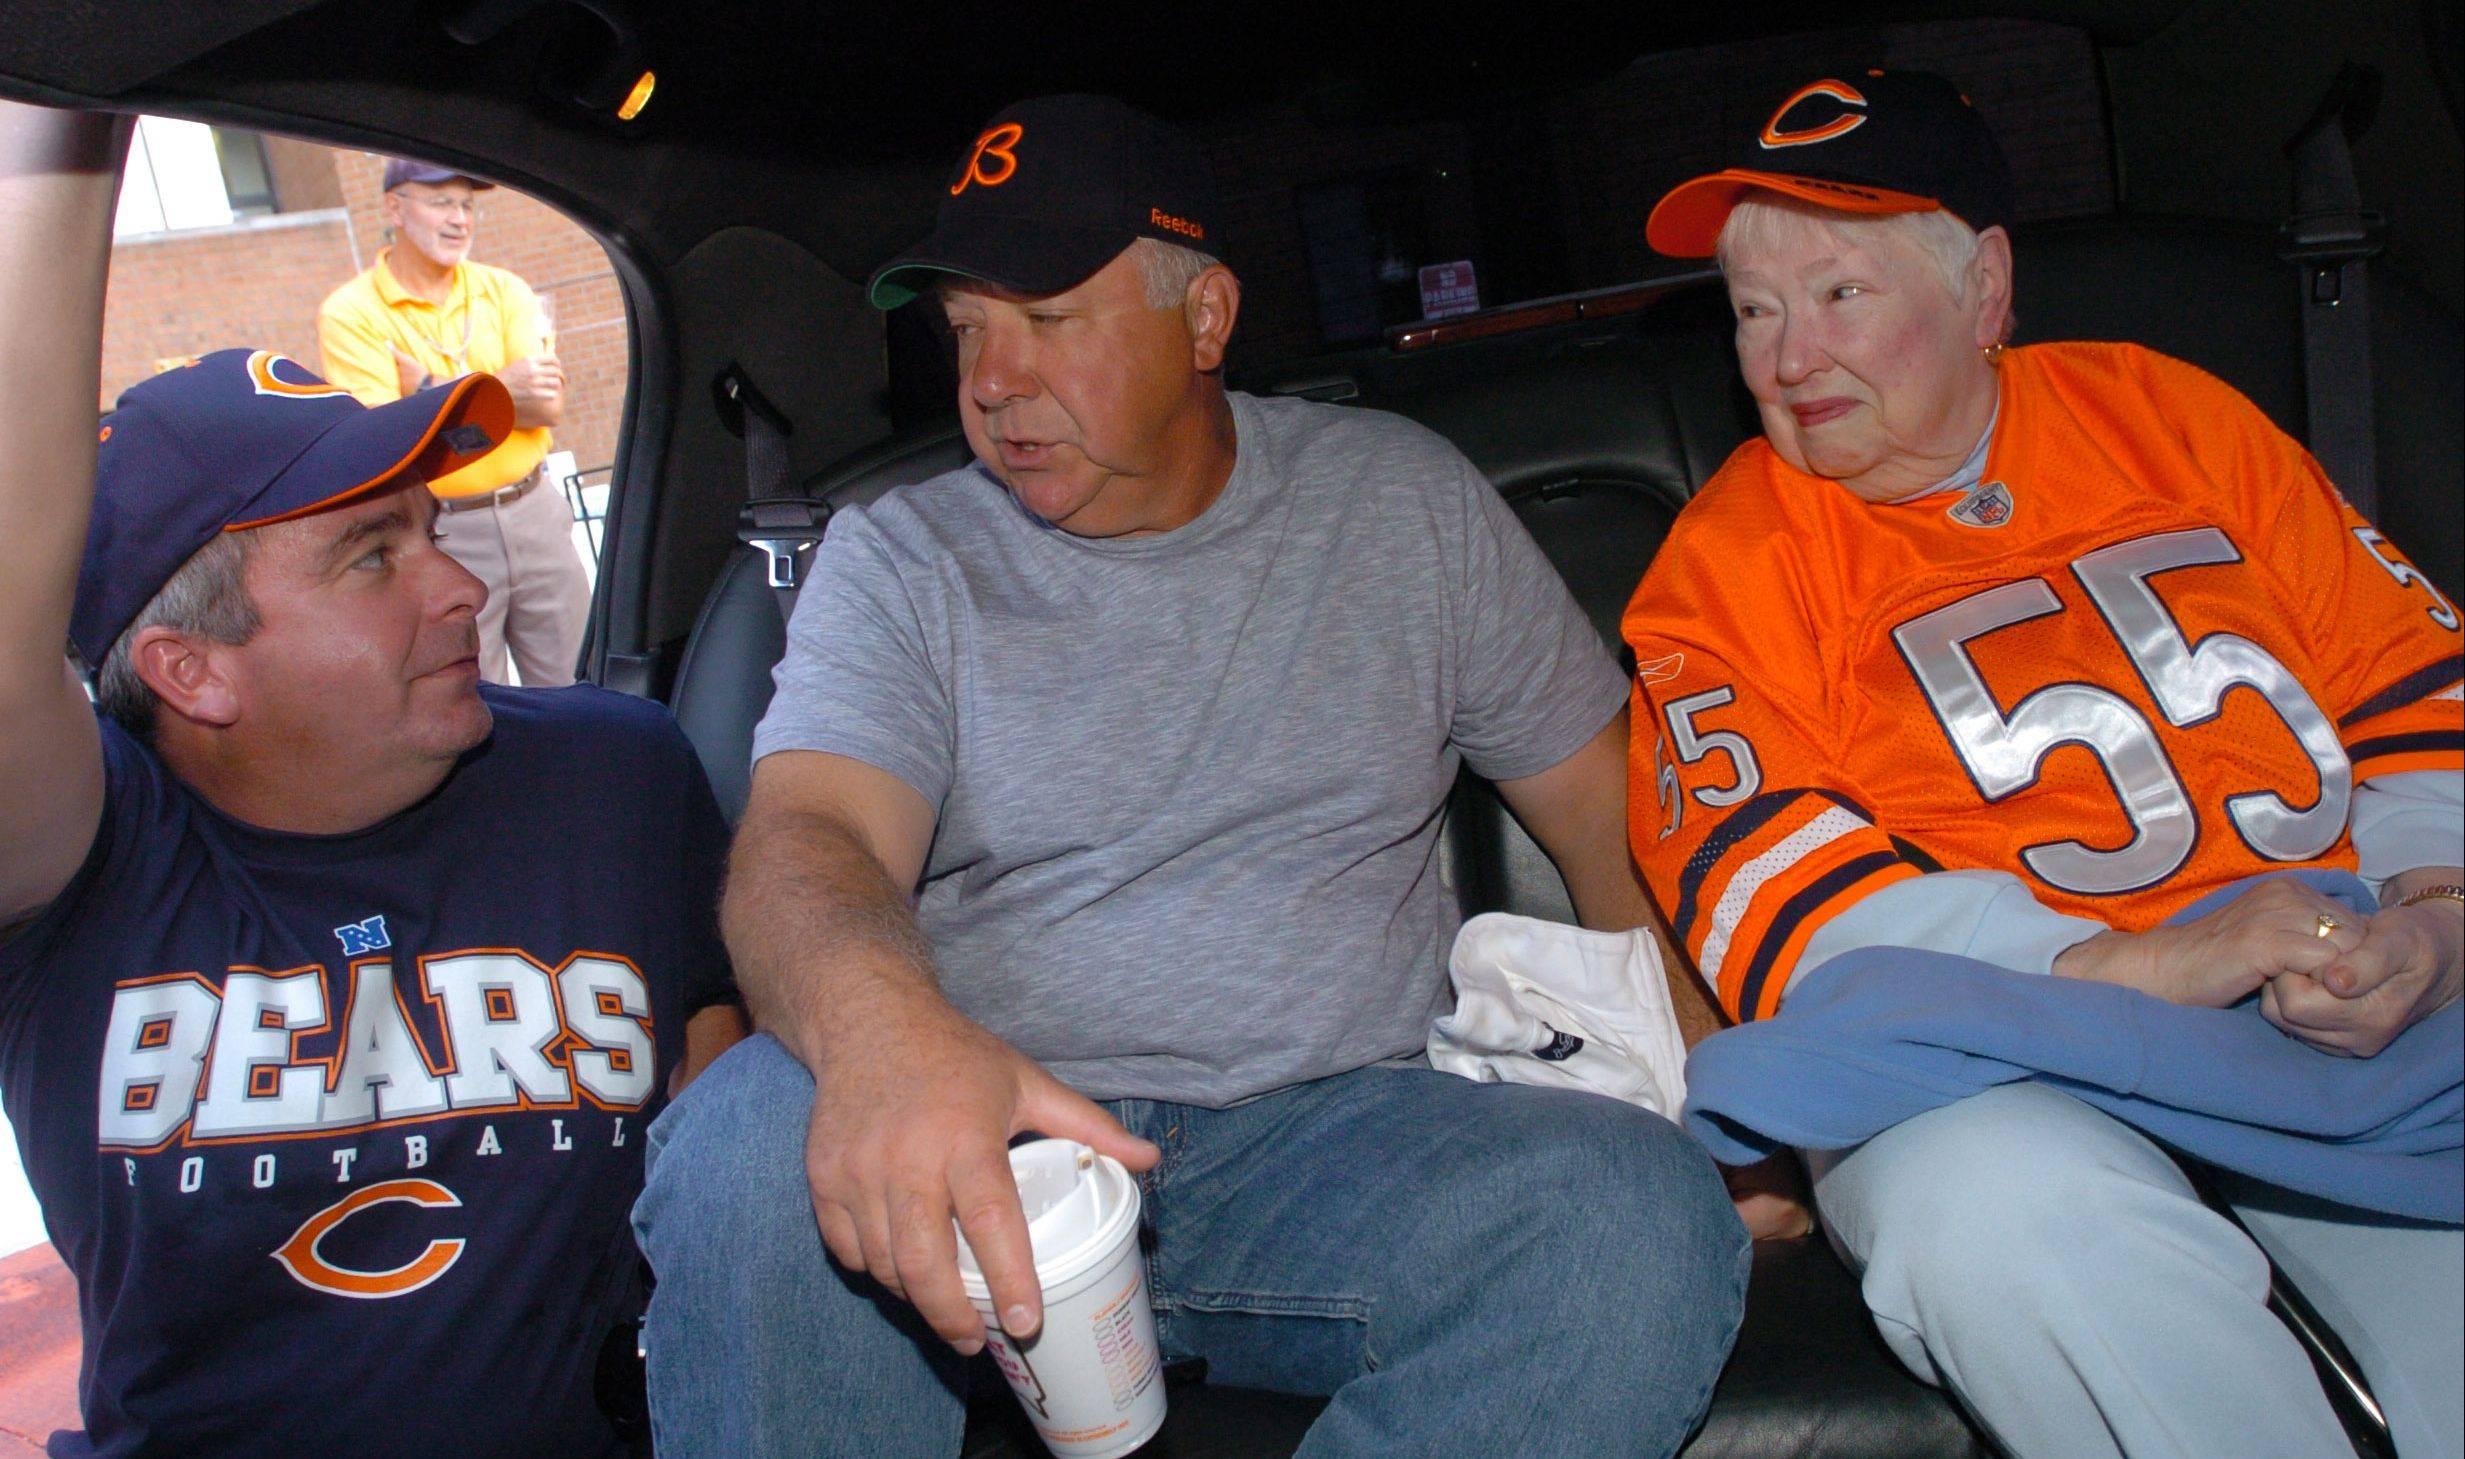 This fall, Bensenville's Golden Wishes program sent Jim and Lauri Collins, along with Betty Madland and her son, George, to attend a Chicago Bears game. Village President Frank Soto, left, saw the Madlands off to the game in a limo.